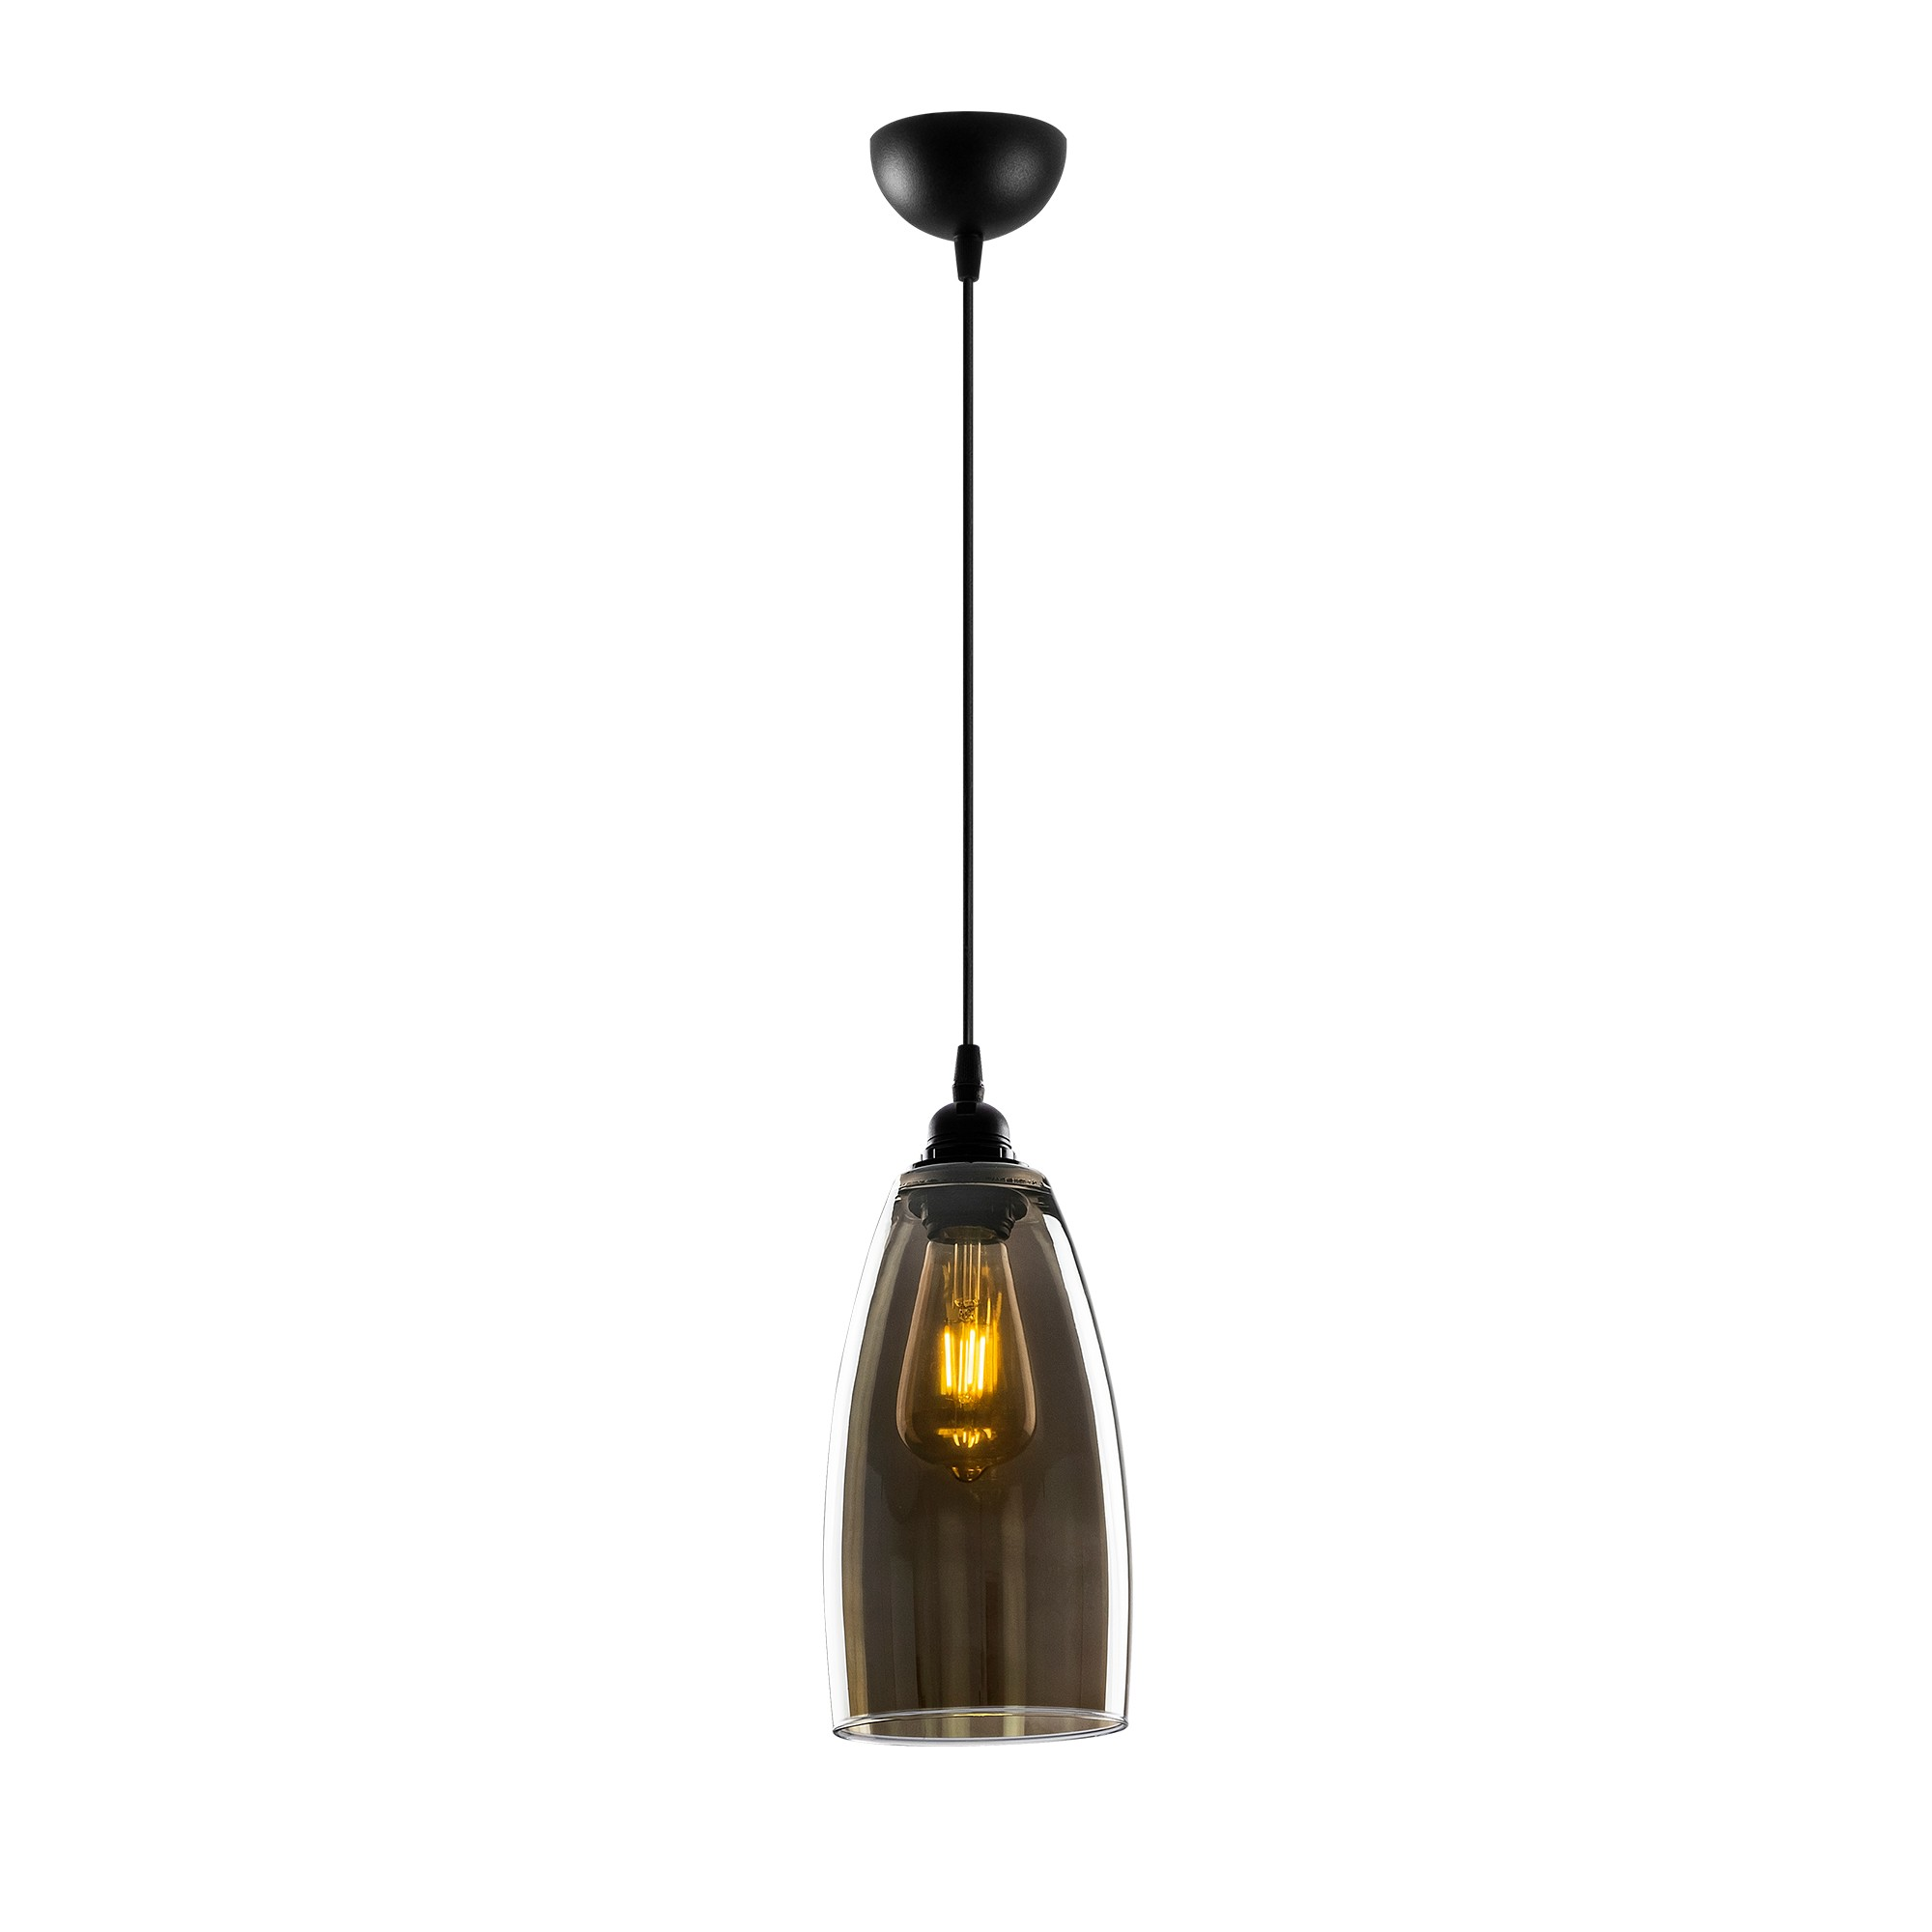 Hanglamp glad smoked glass langwerpig 1 x E27 fitting - vooraanzicht lamp aan